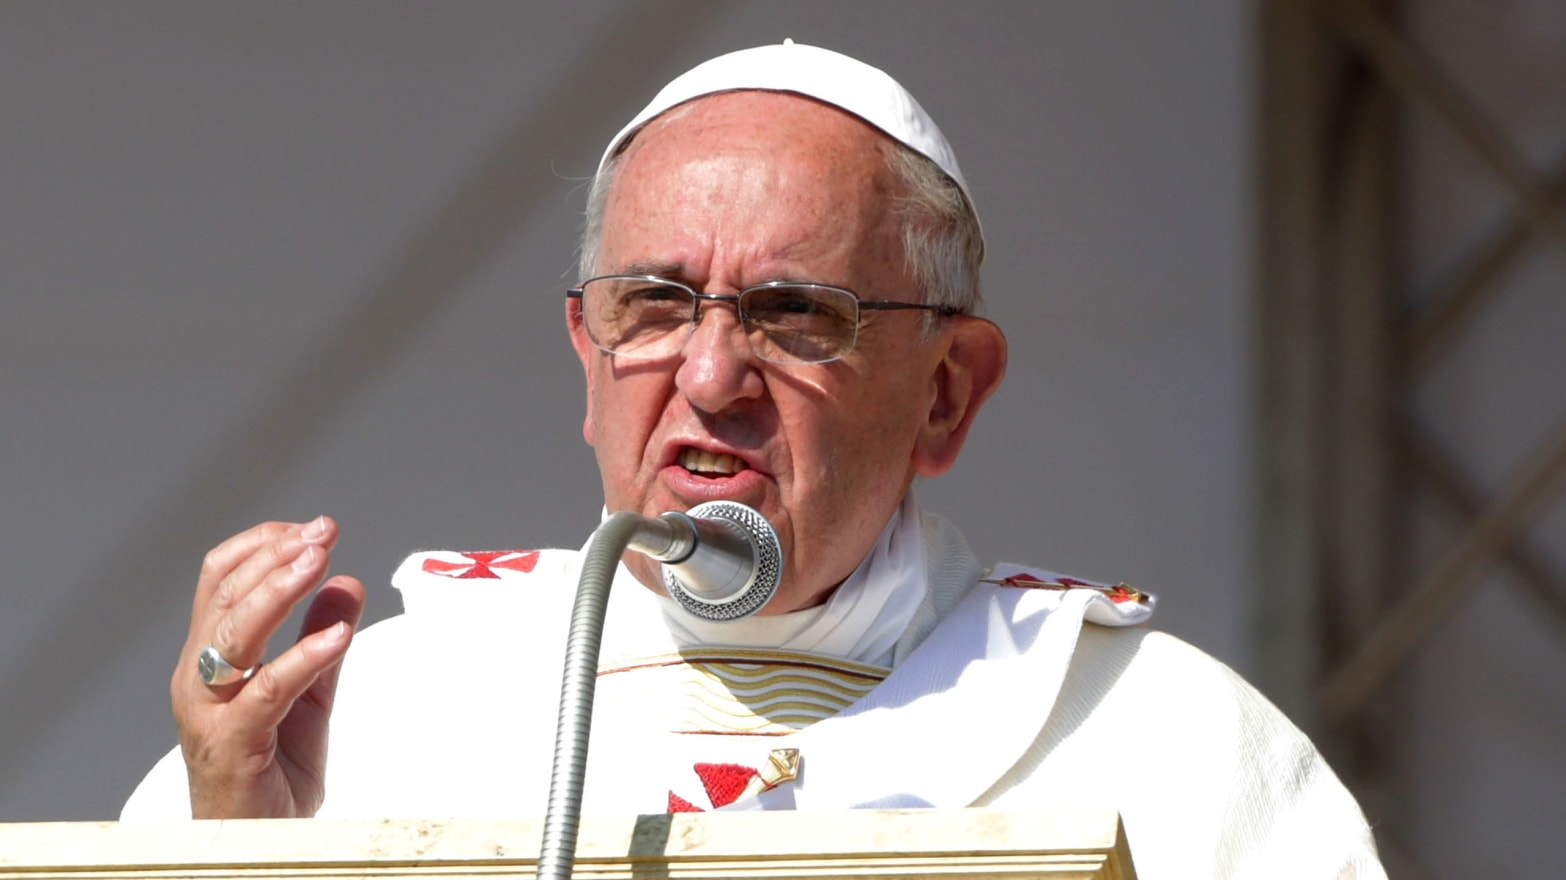 Pope Francis May Be Risking His Life by Taking on the Mafia